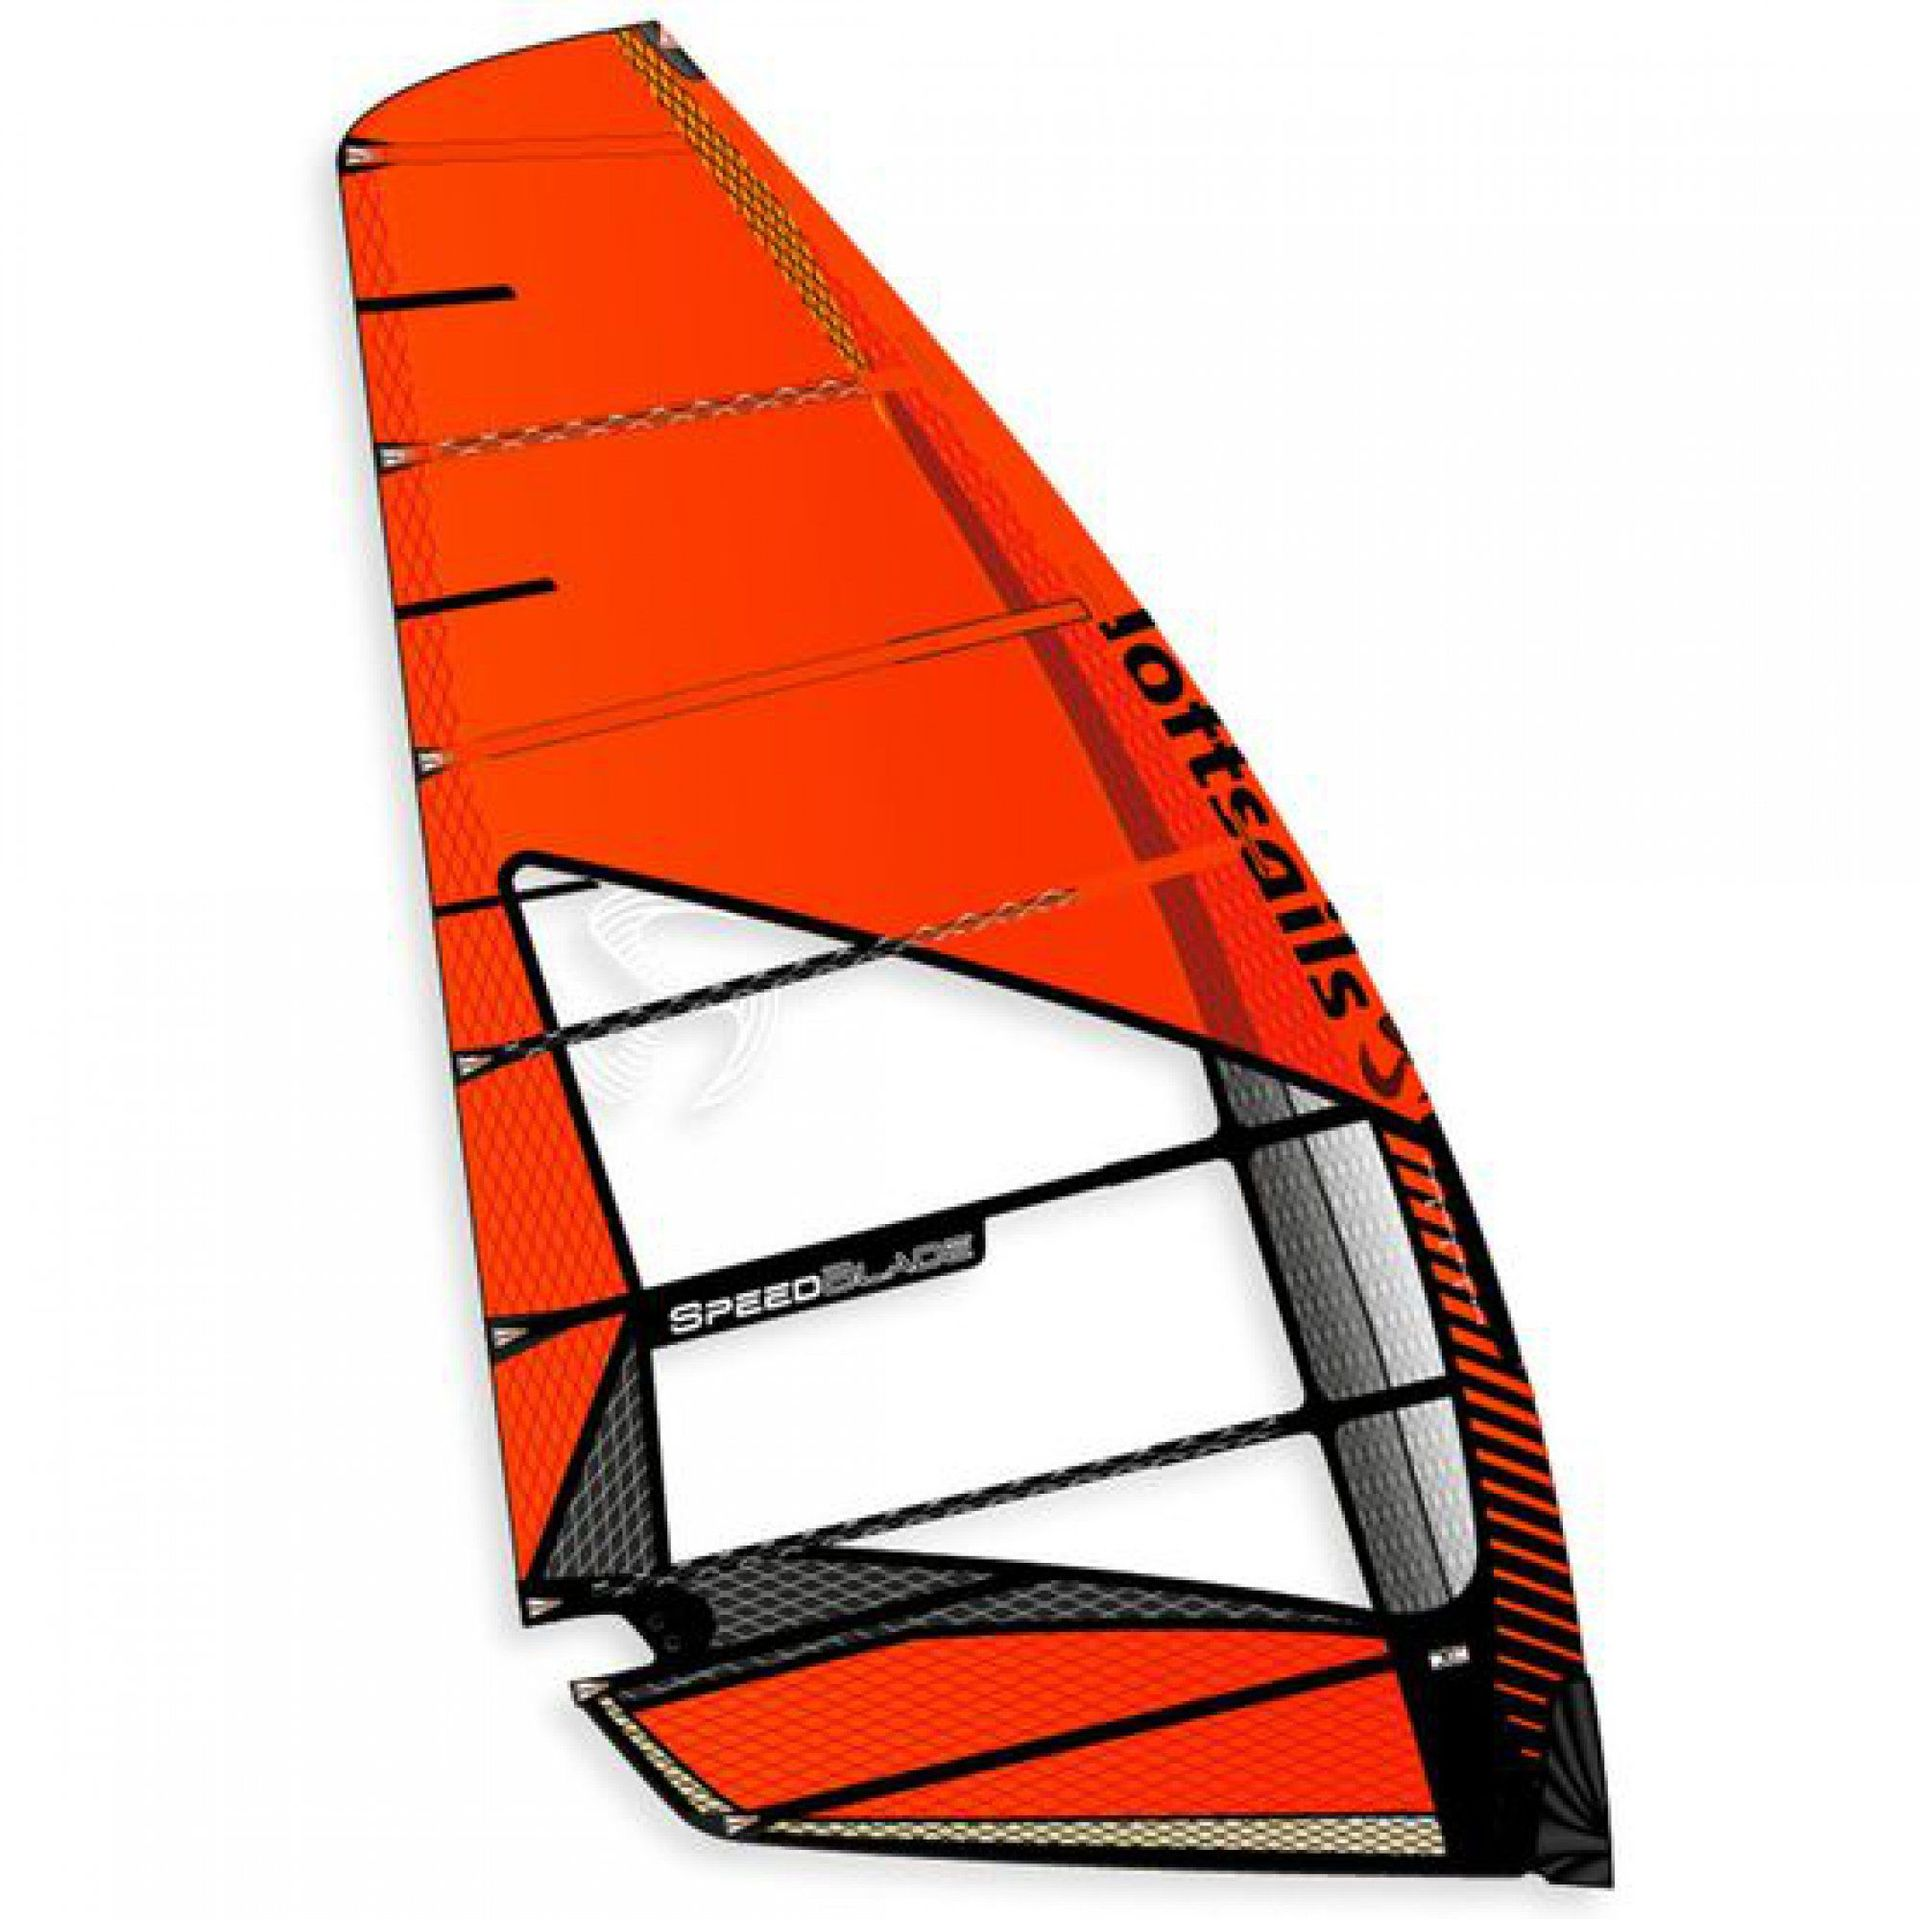 ŻAGIEL LOFTSAILS SPEEDBLADE 2018 ORANGE 1